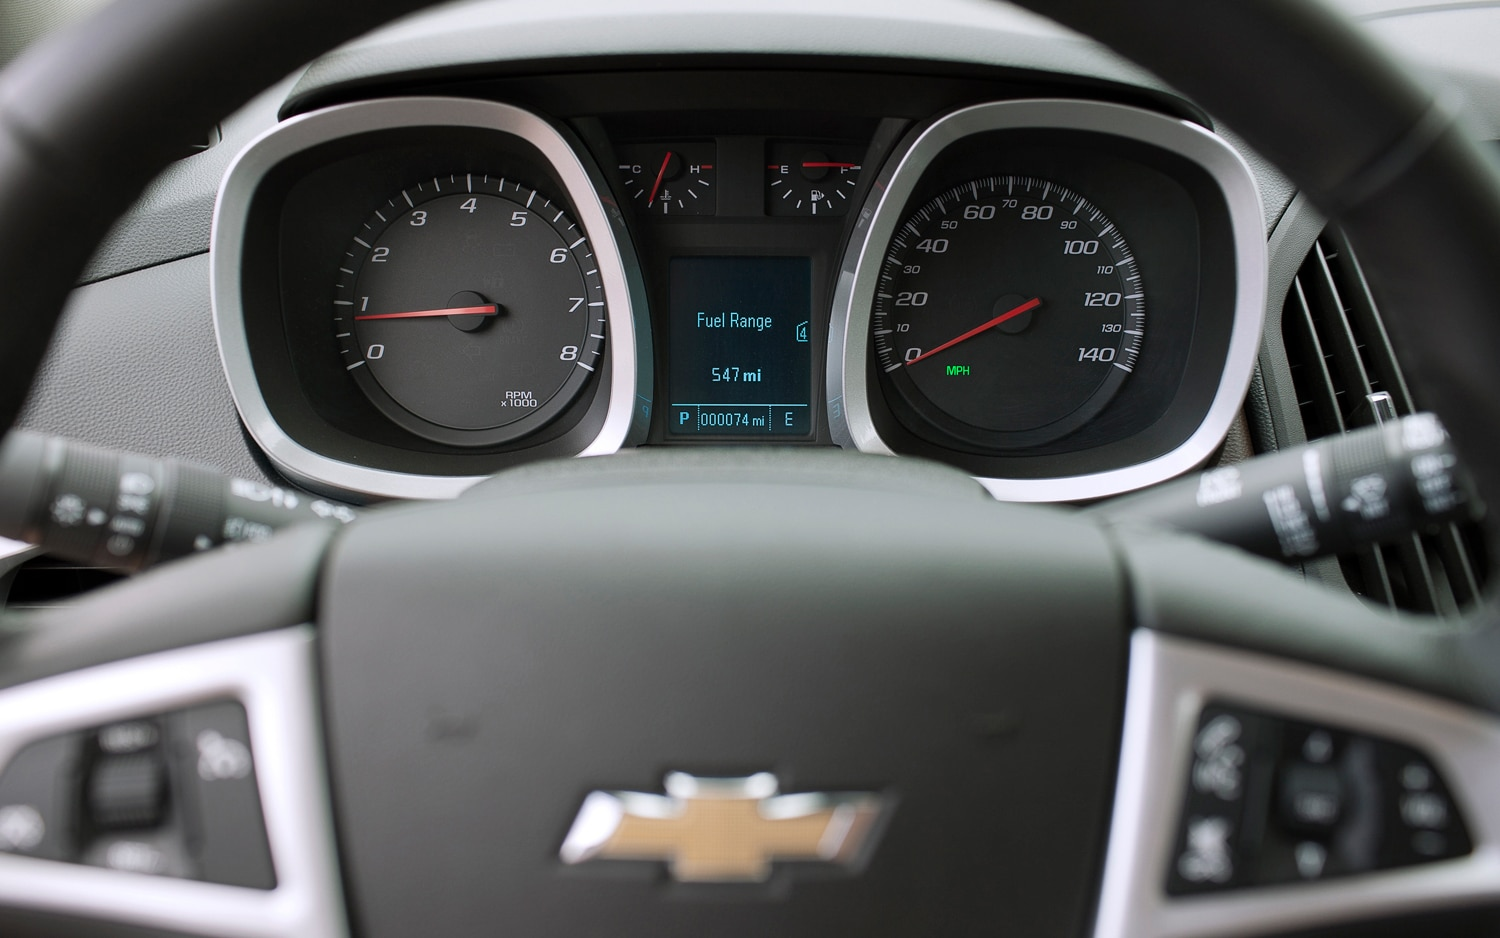 2013 Chevrolet Equinox Dash Guages